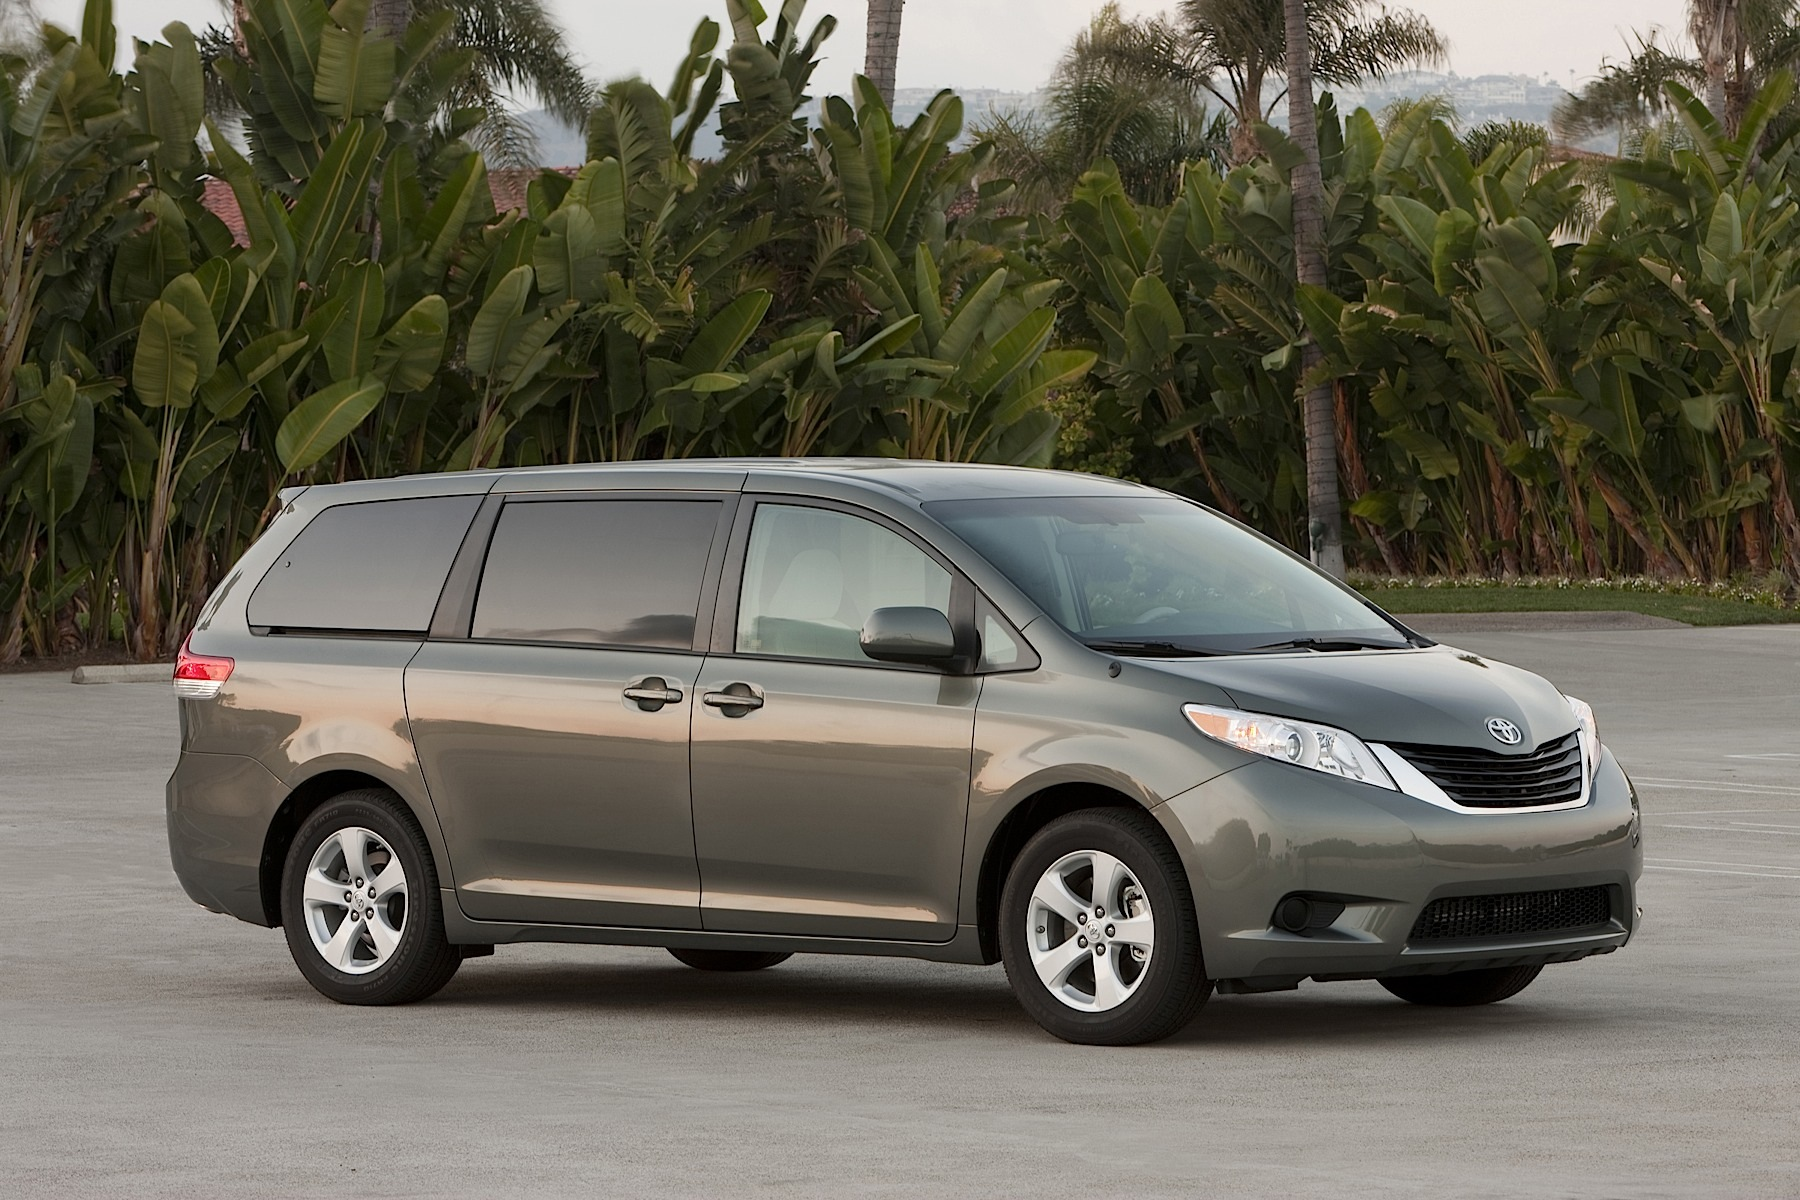 2014 toyota sienna remains the only awd family van autoevolution. Black Bedroom Furniture Sets. Home Design Ideas